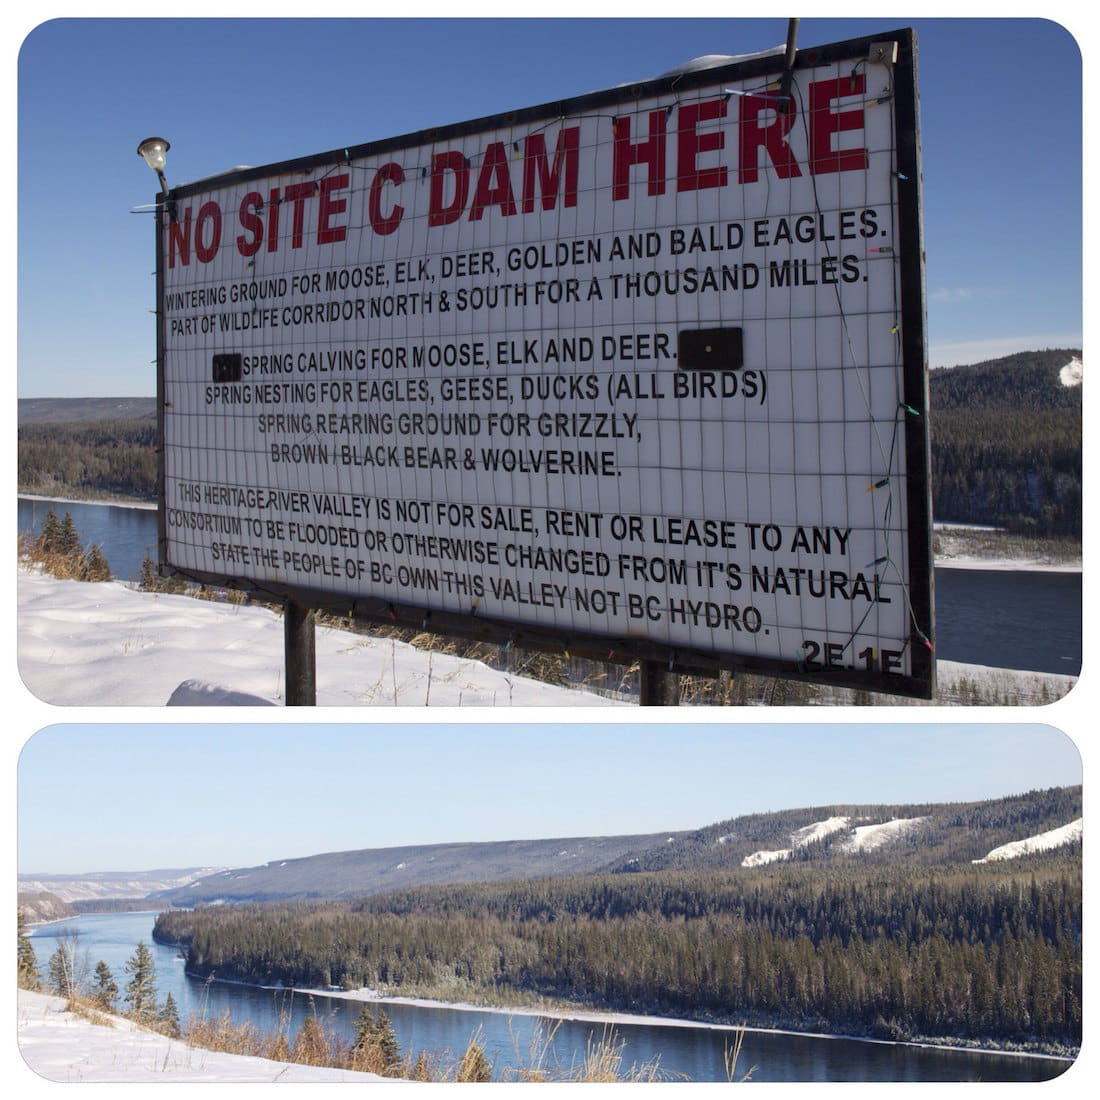 No Site C Dam Here by Jerry (CC BY SA, 2.0 License)